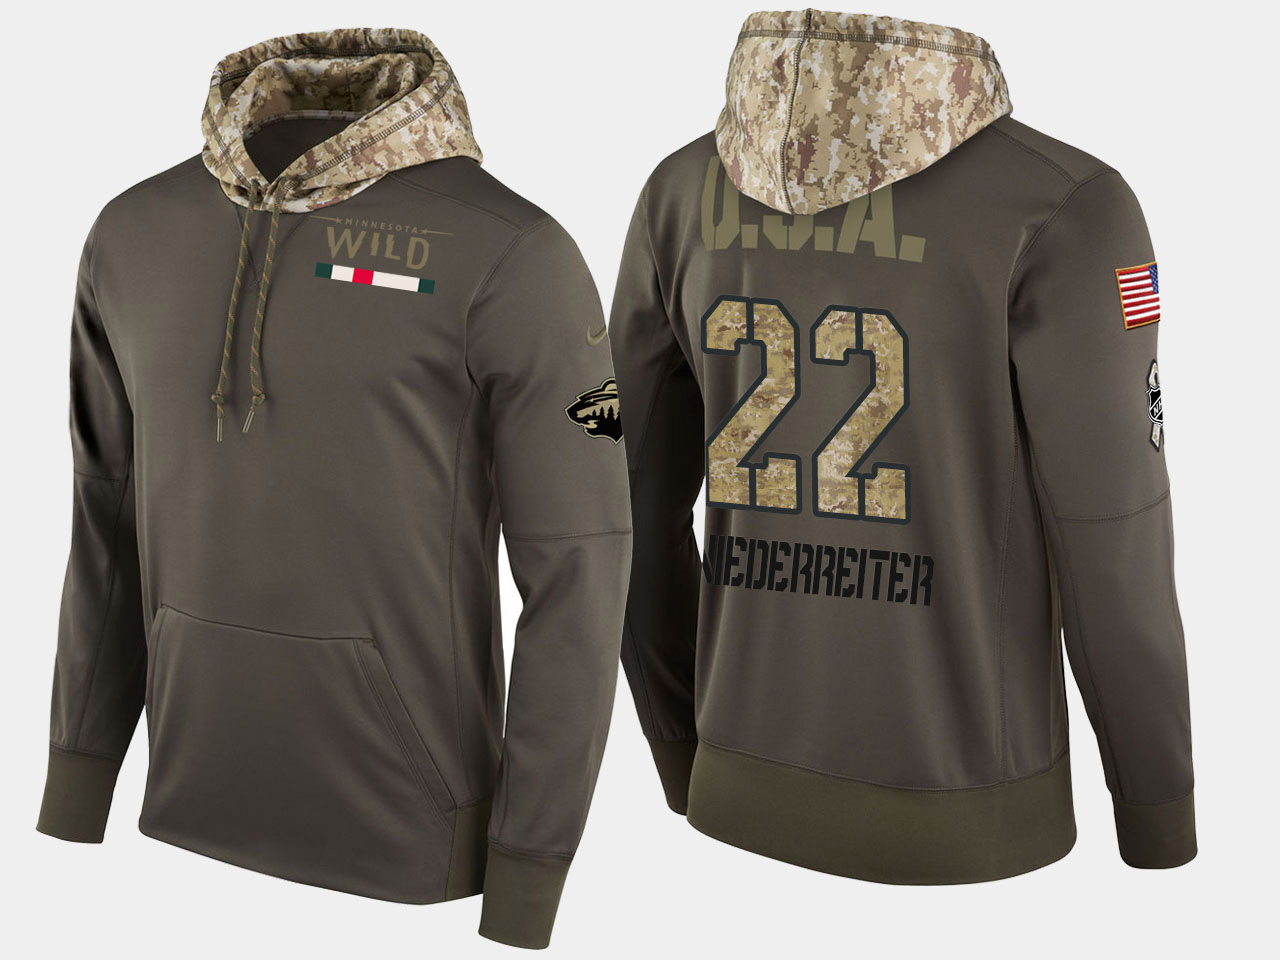 Nike Wild 22 Nino Niederreiter Olive Salute To Service Pullover Hoodie